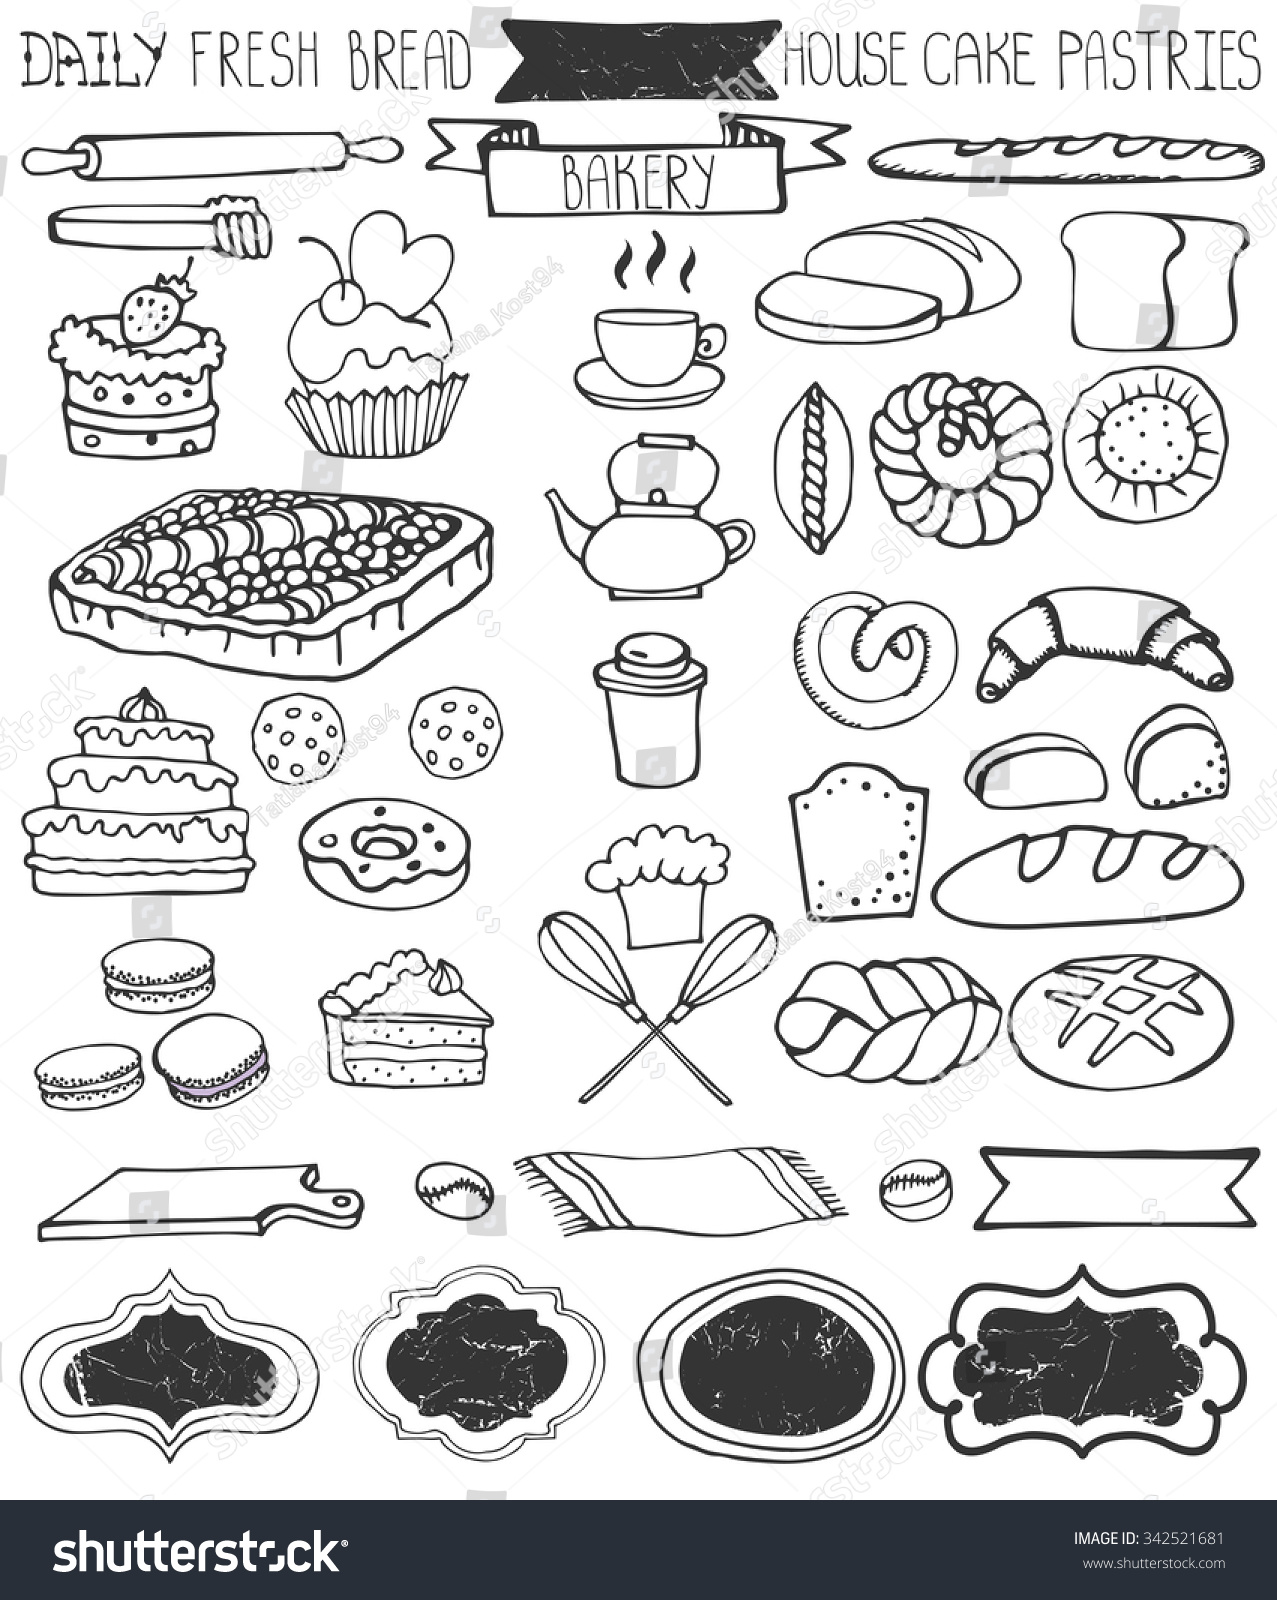 bread doodle bakery doodle vectorbreadcakes pastries icons set stock 5176